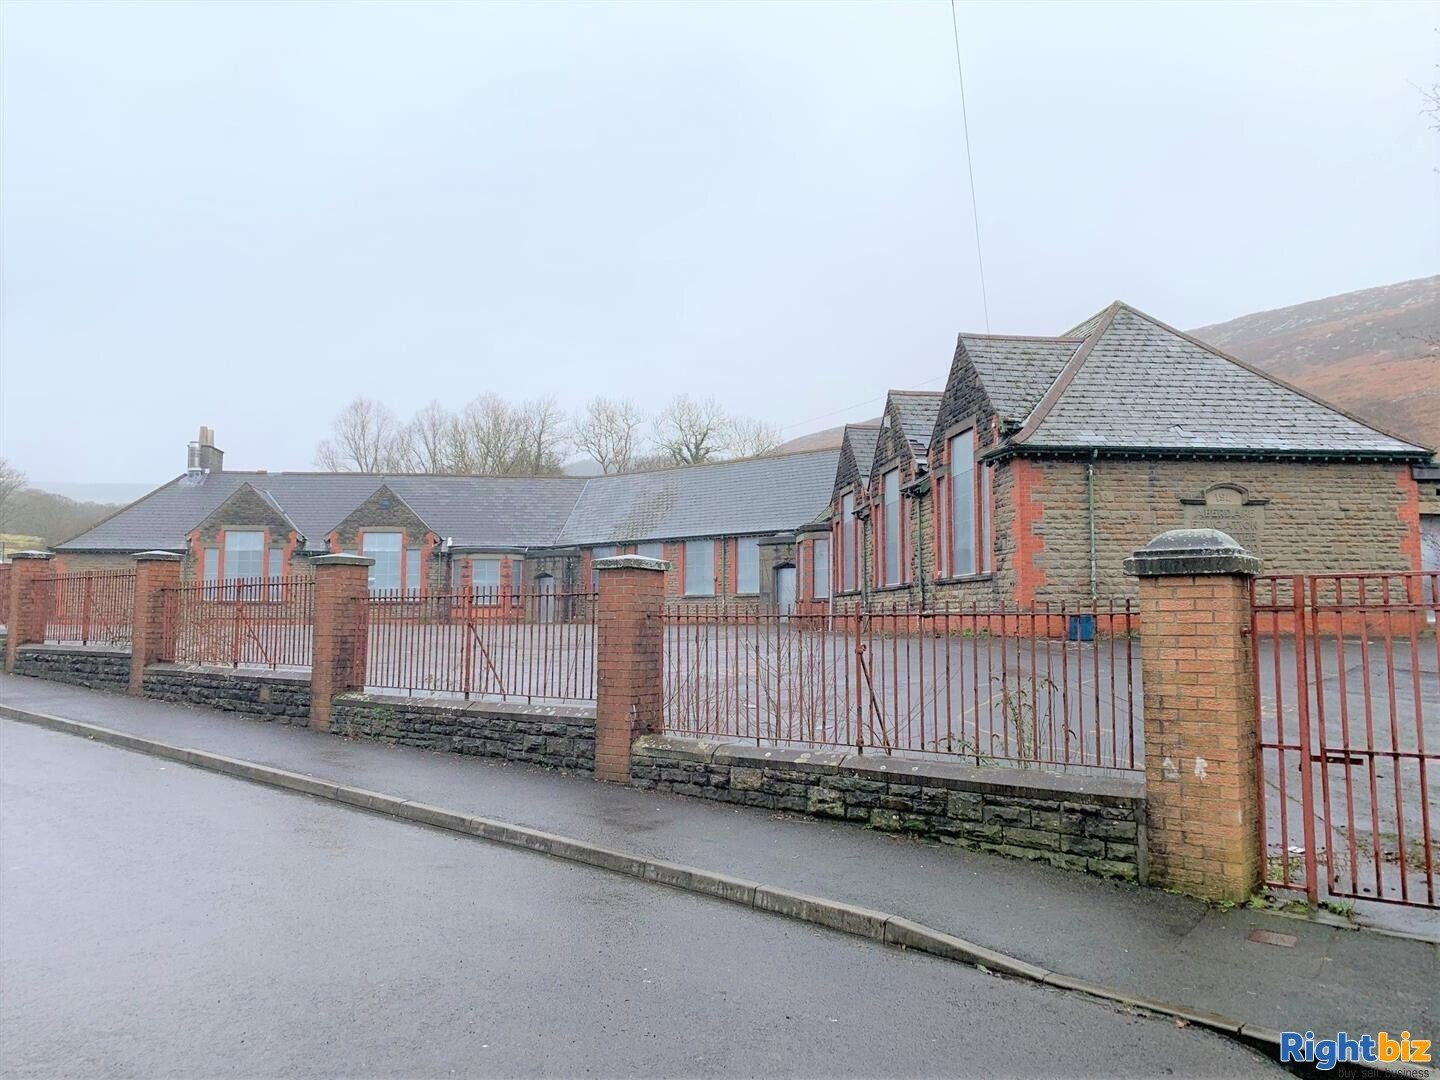 FORMER JUNIOR SCHOOL (CLASS D1 PP) ON A SITE OF AROUND 0.75 ACRES WITH REDEVELOPMENT POTENTIAL - Image 1